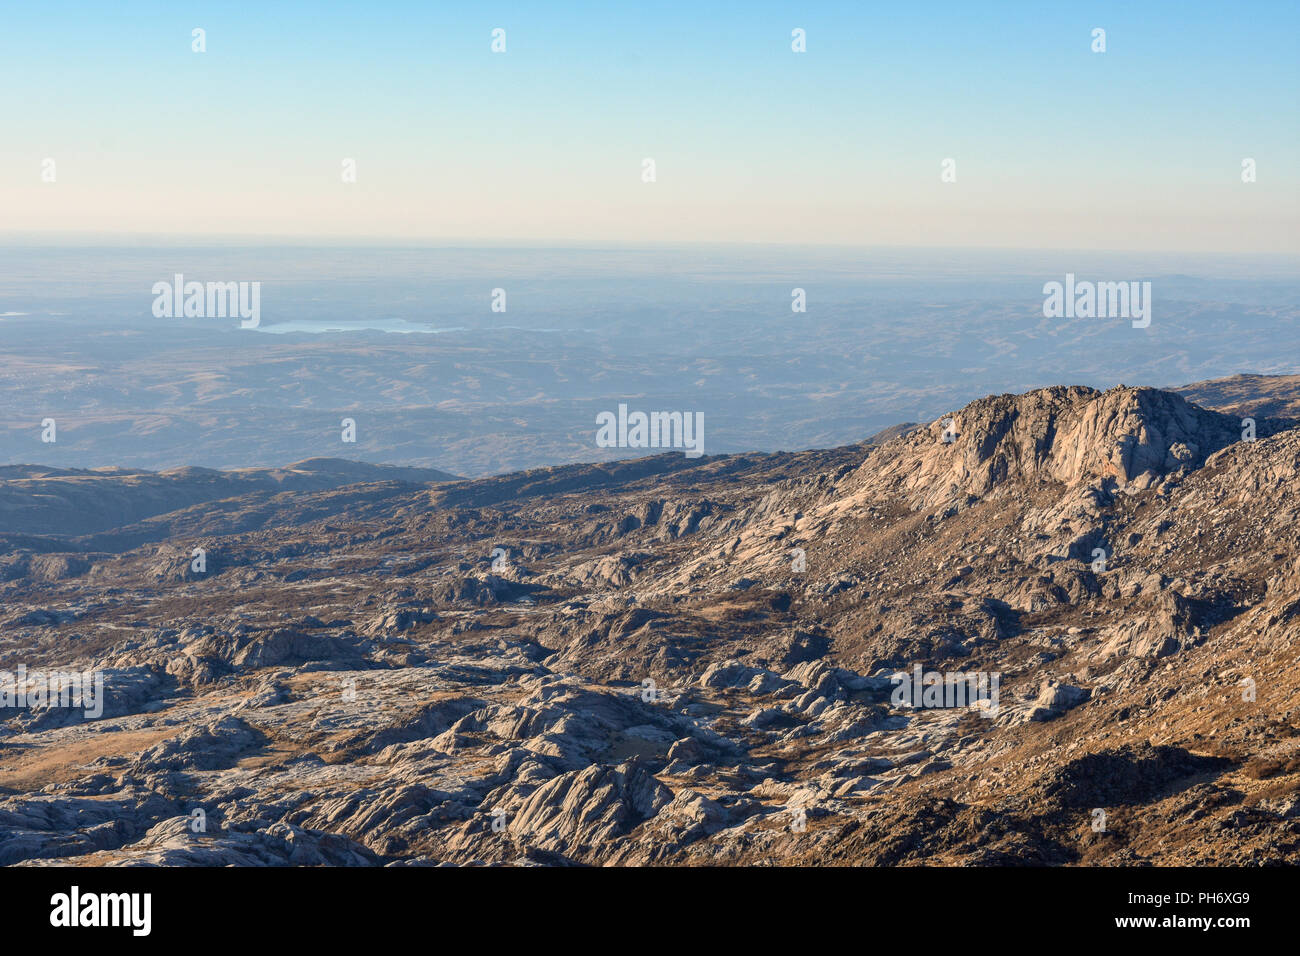 Sunny day from the top of the mountain and with a beautiful view. After a long walk the landscape rewards the effort. - Stock Image